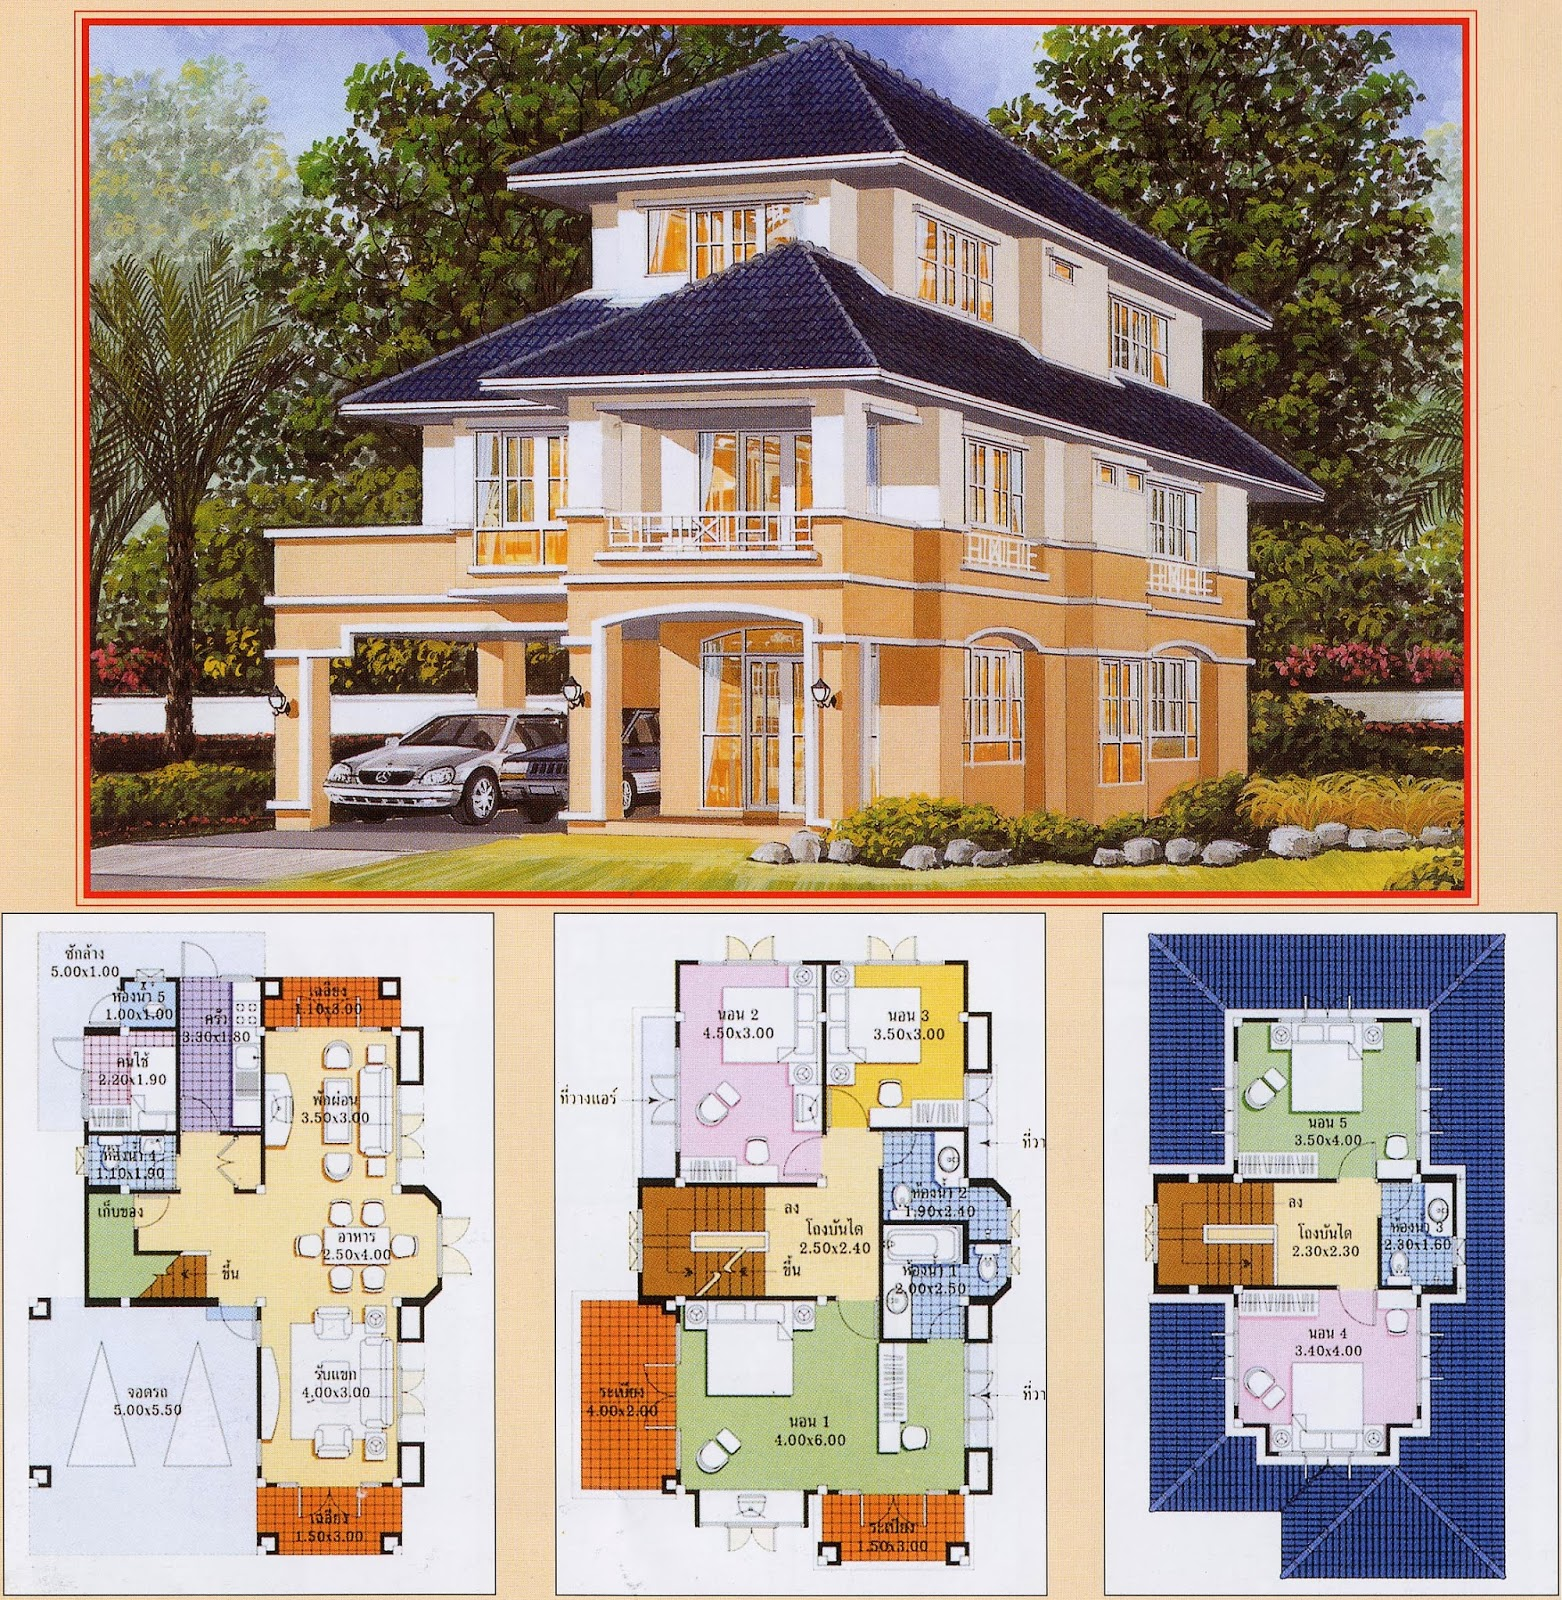 House plan collections 28 images large images for for Home plan collection